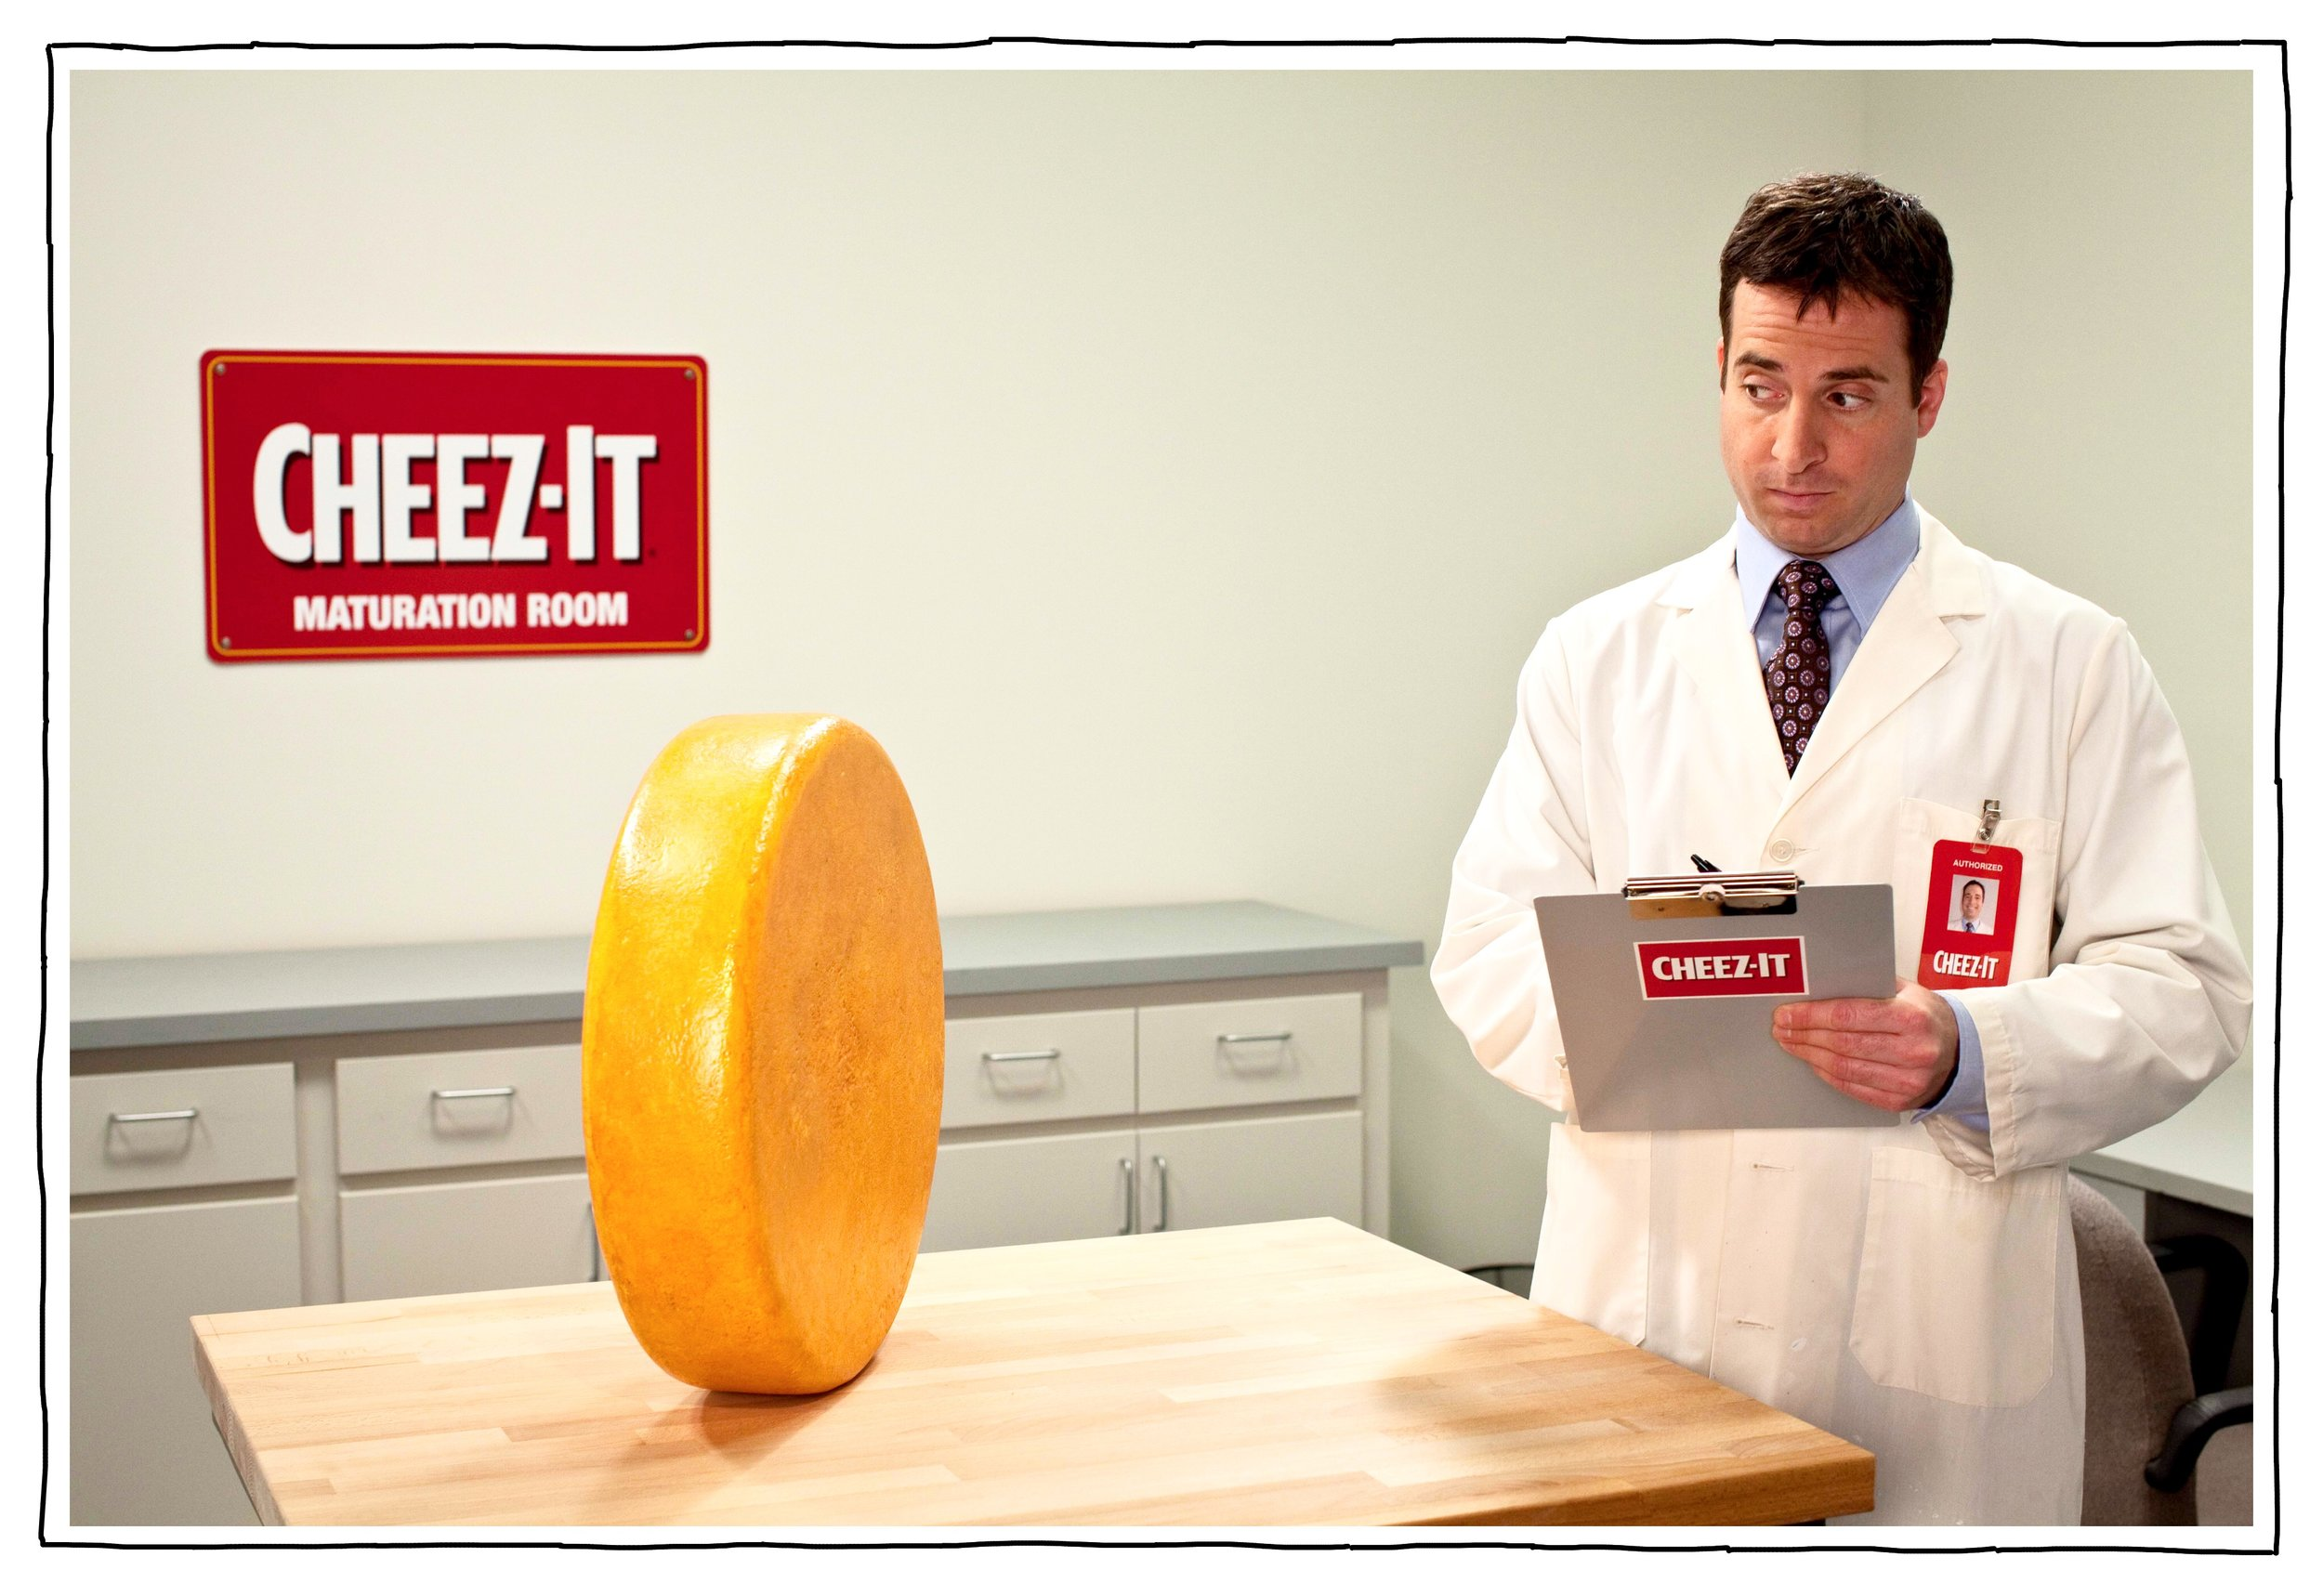 from commercial campaign for Cheez-It